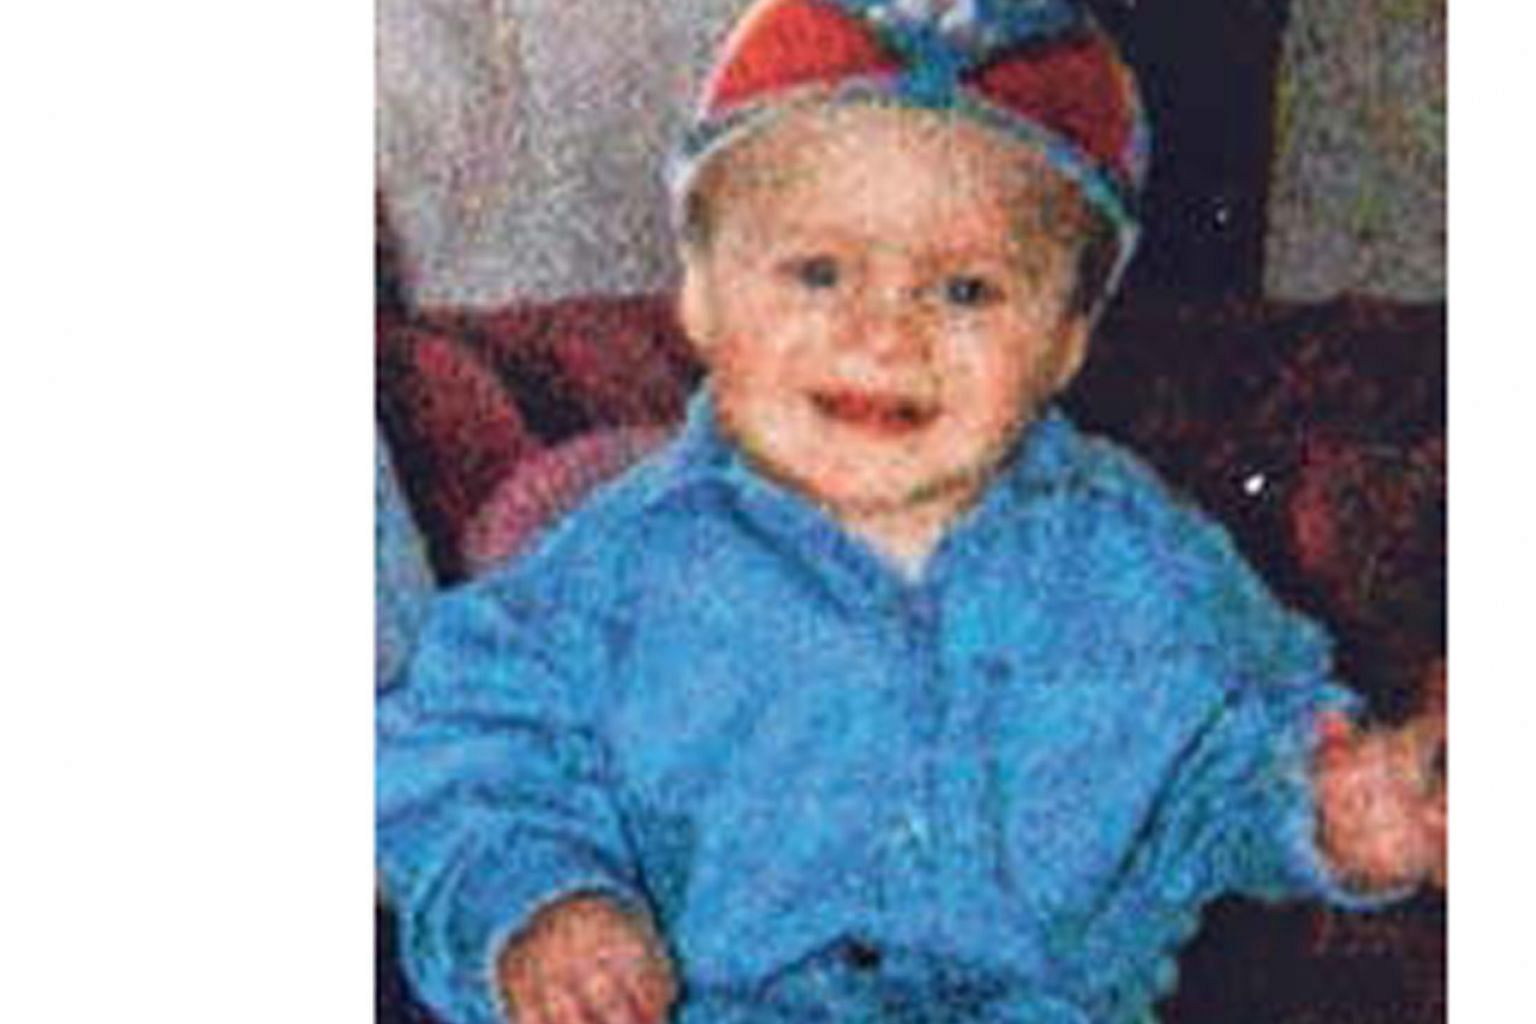 The body of two-year-old James Bulger, who was tortured with bricks and a metal bar, was left on a railway line in 1993 by his two killers, both only 10 at the time.